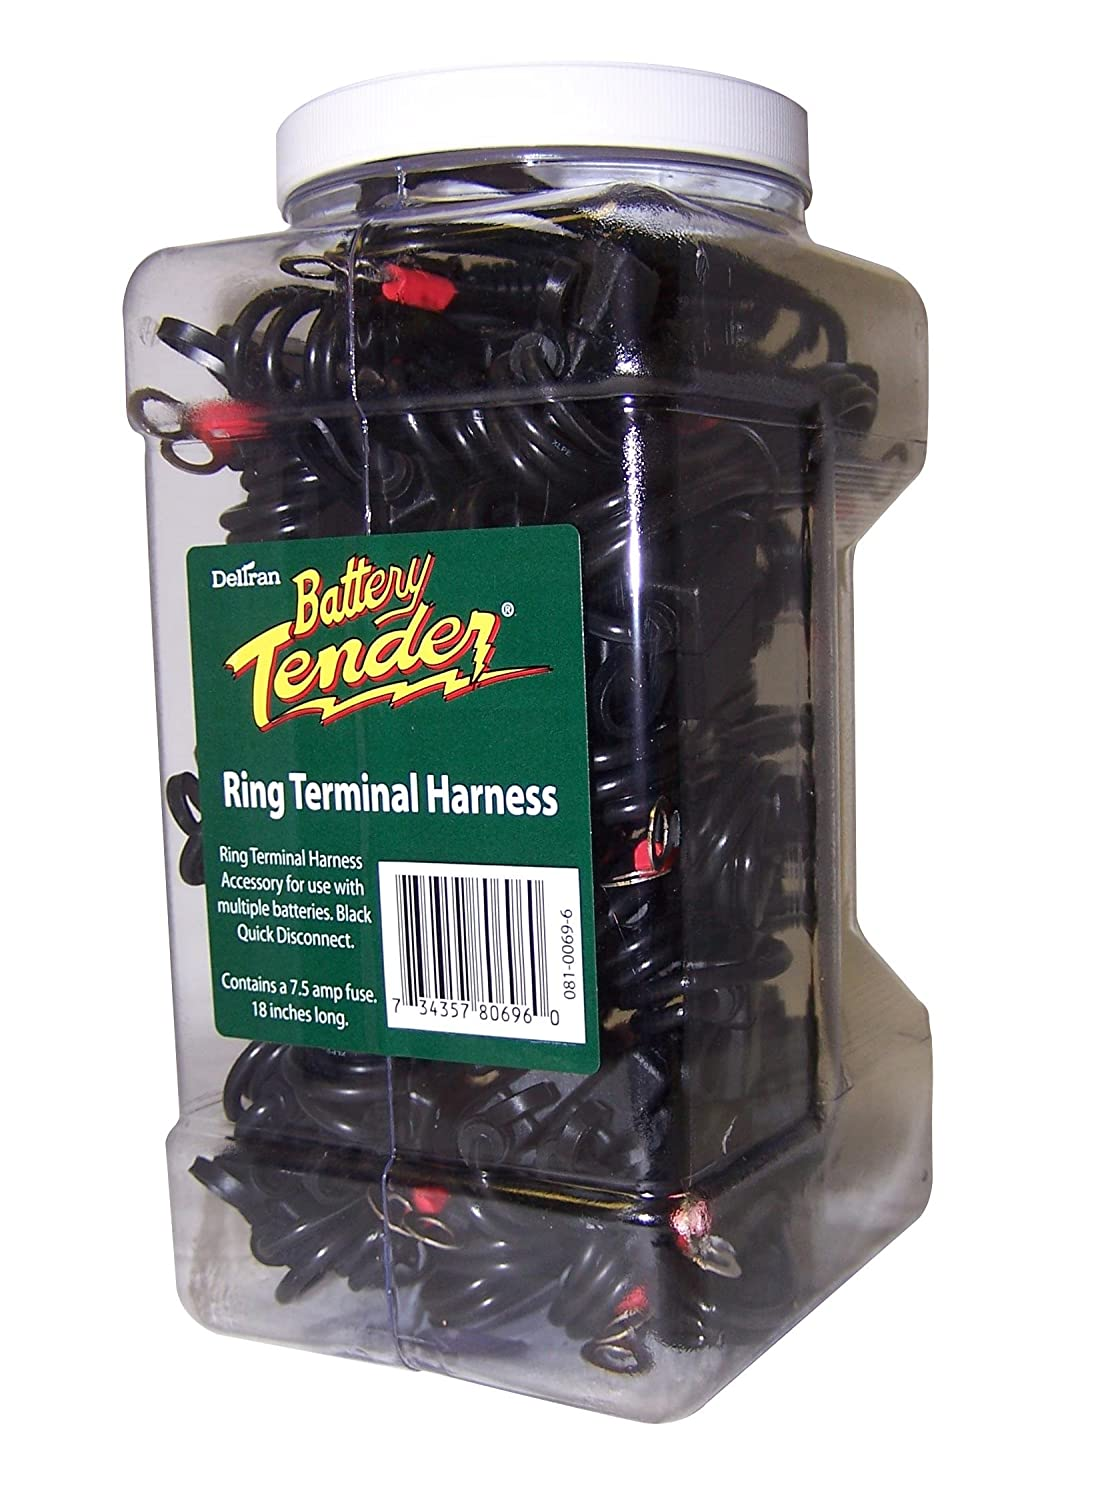 Battery Tender 081-0069-6-J25 Ring Terminal Harness with Fused 2-Pin Quick Disconnect Plug - Pack of 25 Z21-2123